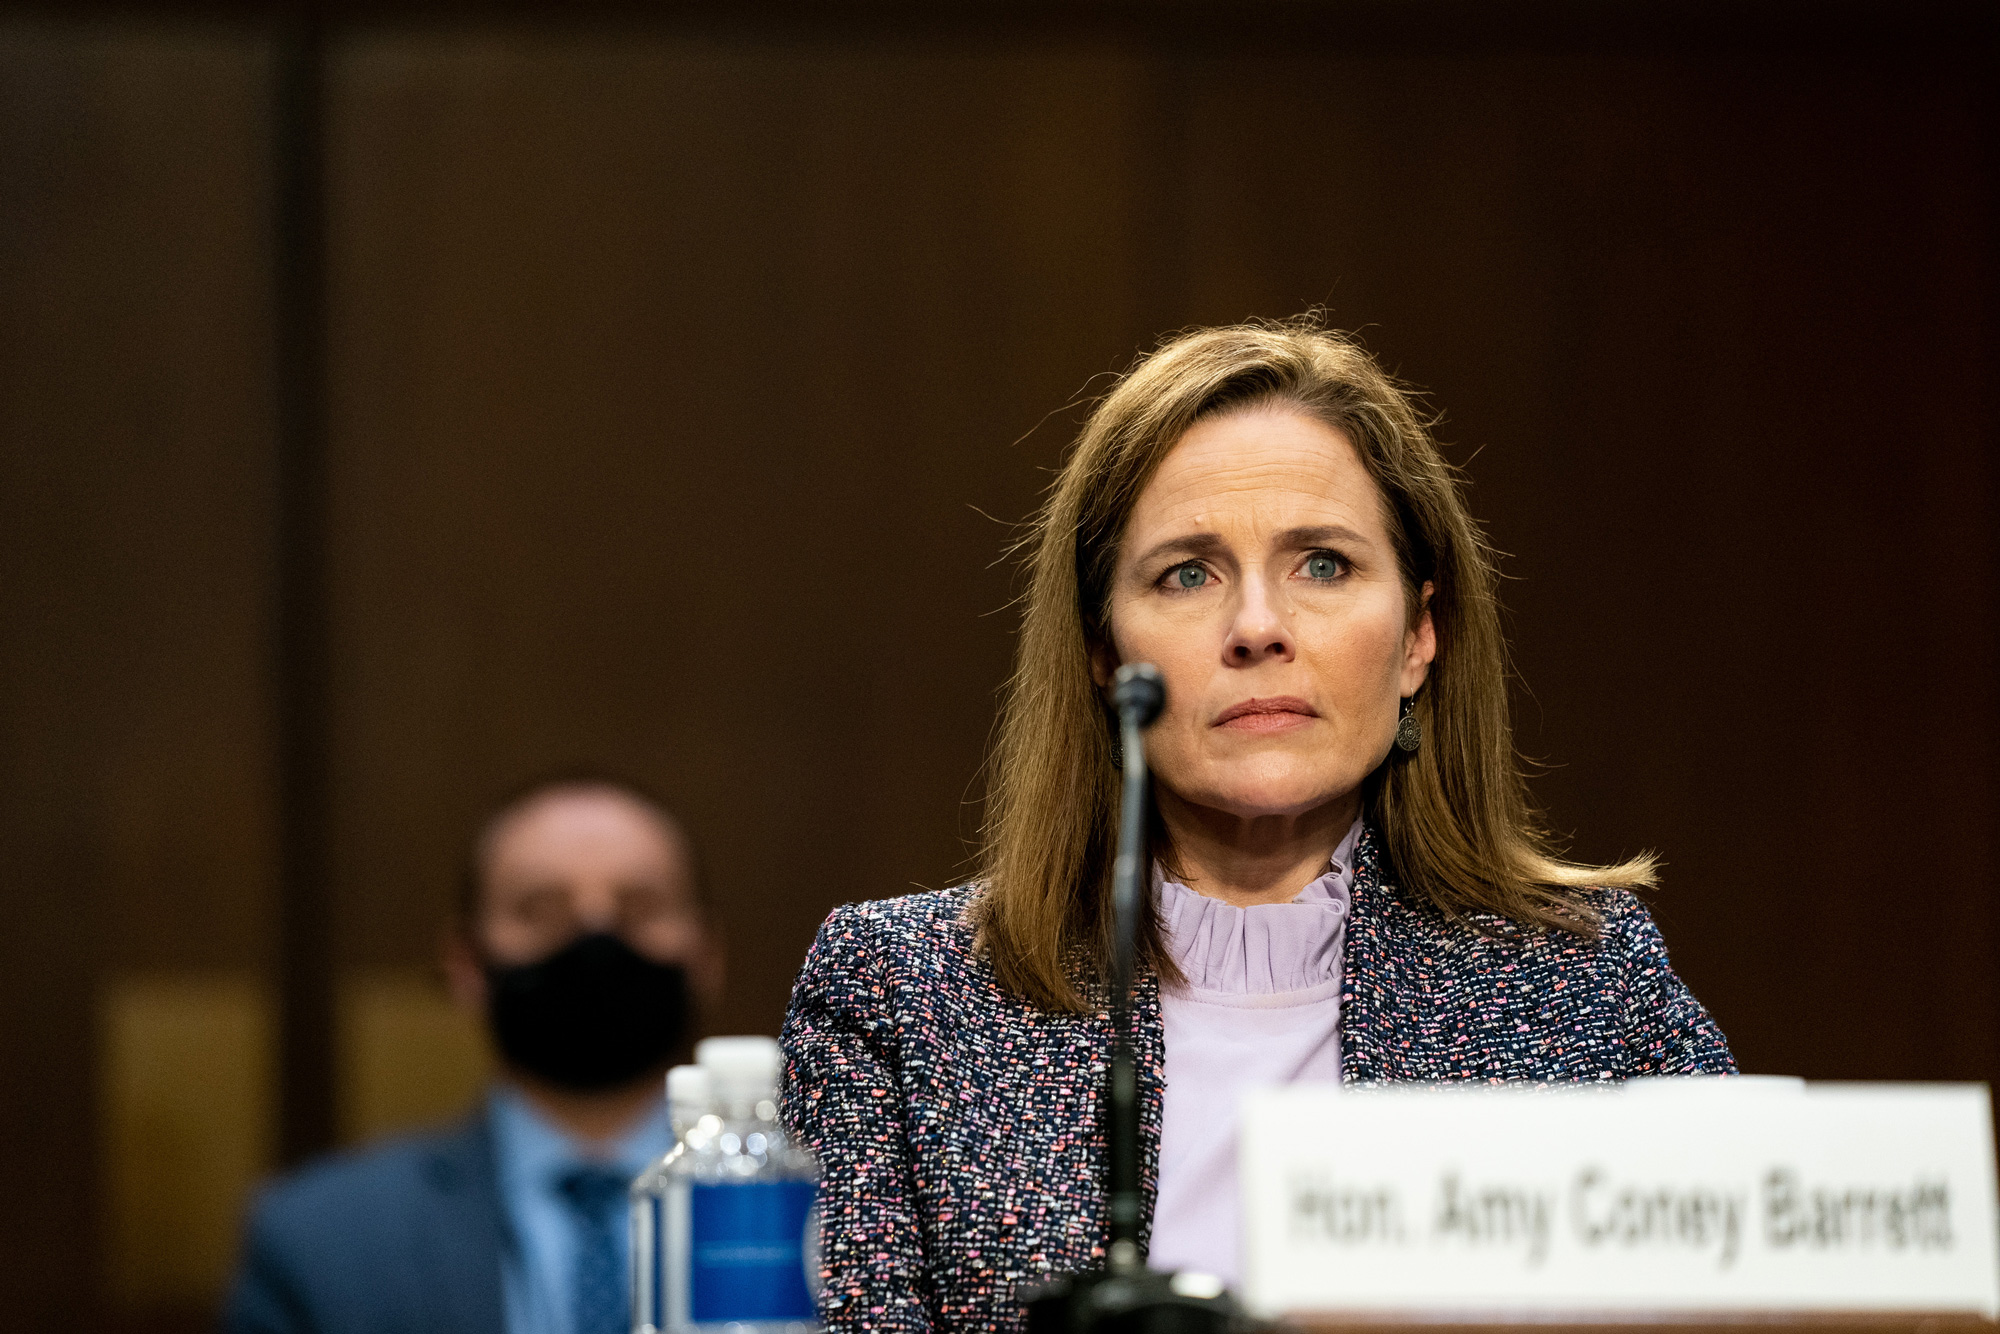 Judge Amy Coney Barrett testifies before the Senate Judiciary Committee on the third day of her Supreme Court confirmation hearing on Capitol Hill on October 14 in Washington, DC.